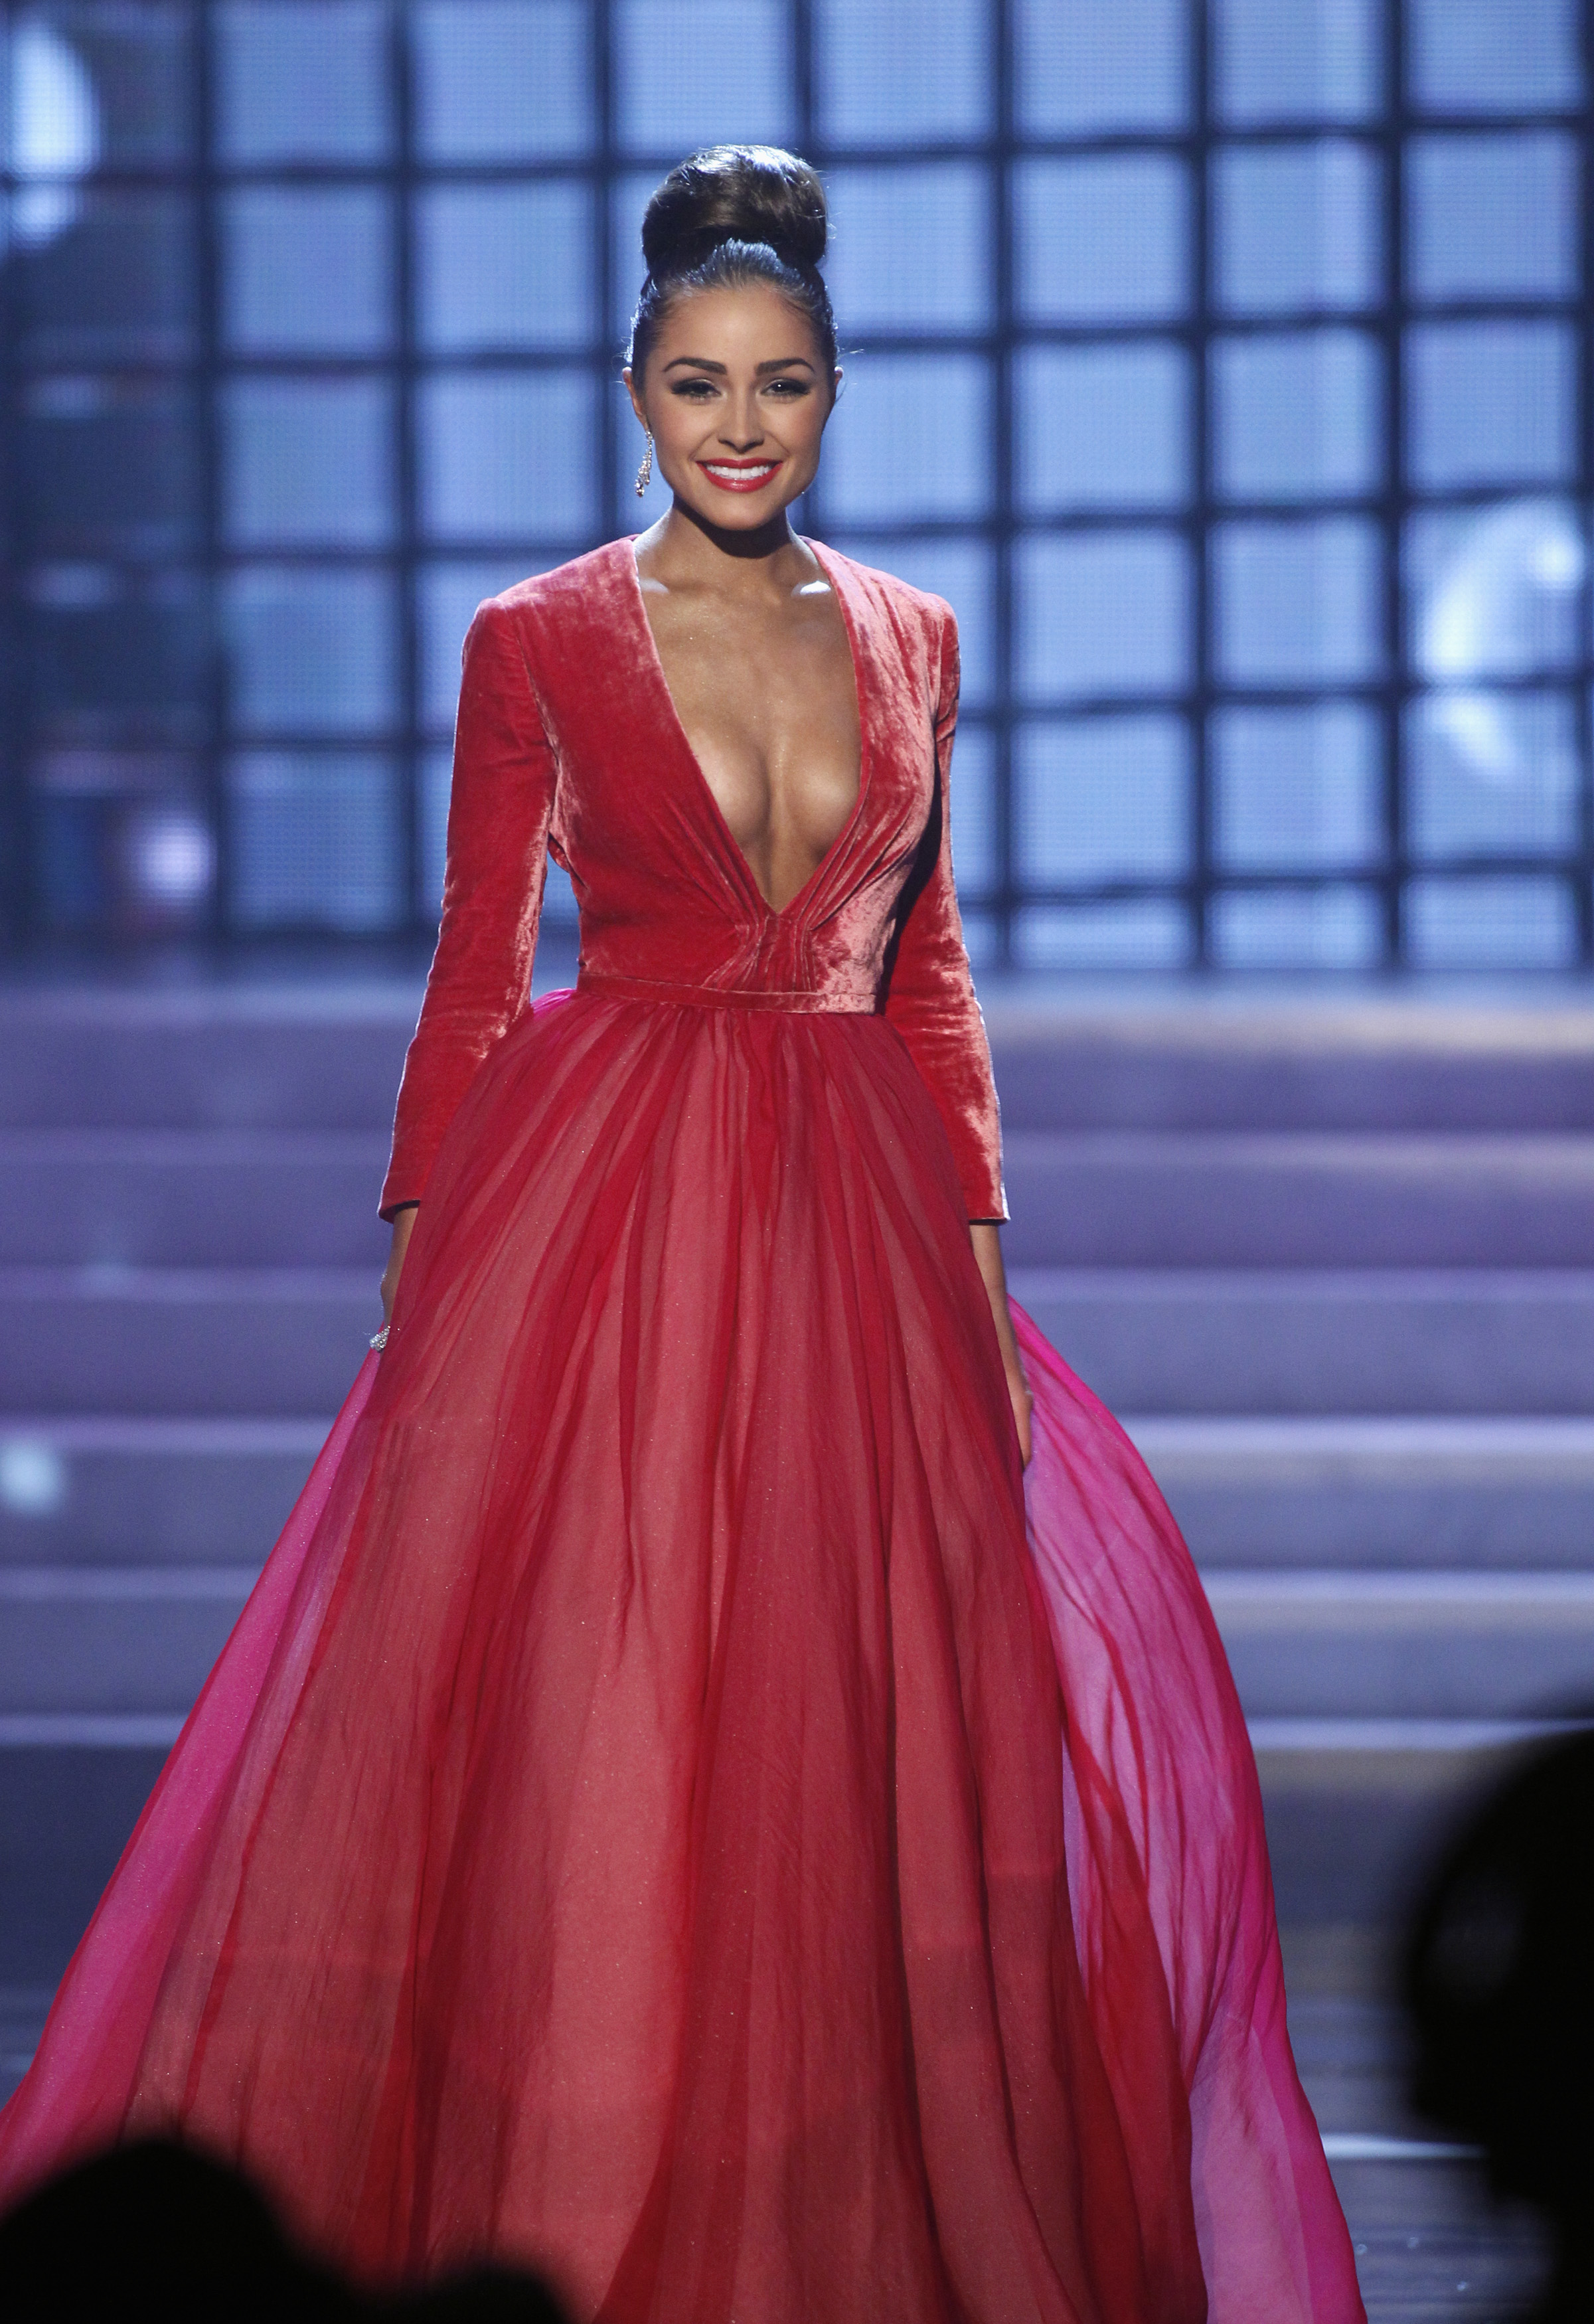 Miss USA Olivia Culpo competes in the evening gown portion of the Miss Universe pageant at Planet Hollywood Resort and Casino in Las Vegas, Nevada December 19, 2012. Culpo was later crowned Miss Universe 2012. REUTERS/Steve Marcus (UNITED STATES - Tags: ENTERTAINMENT) FOR EDITORIAL USE ONLY. NOT FOR SALE FOR MARKETING OR ADVERTISING CAMPAIGNS - RTR3BRLQ